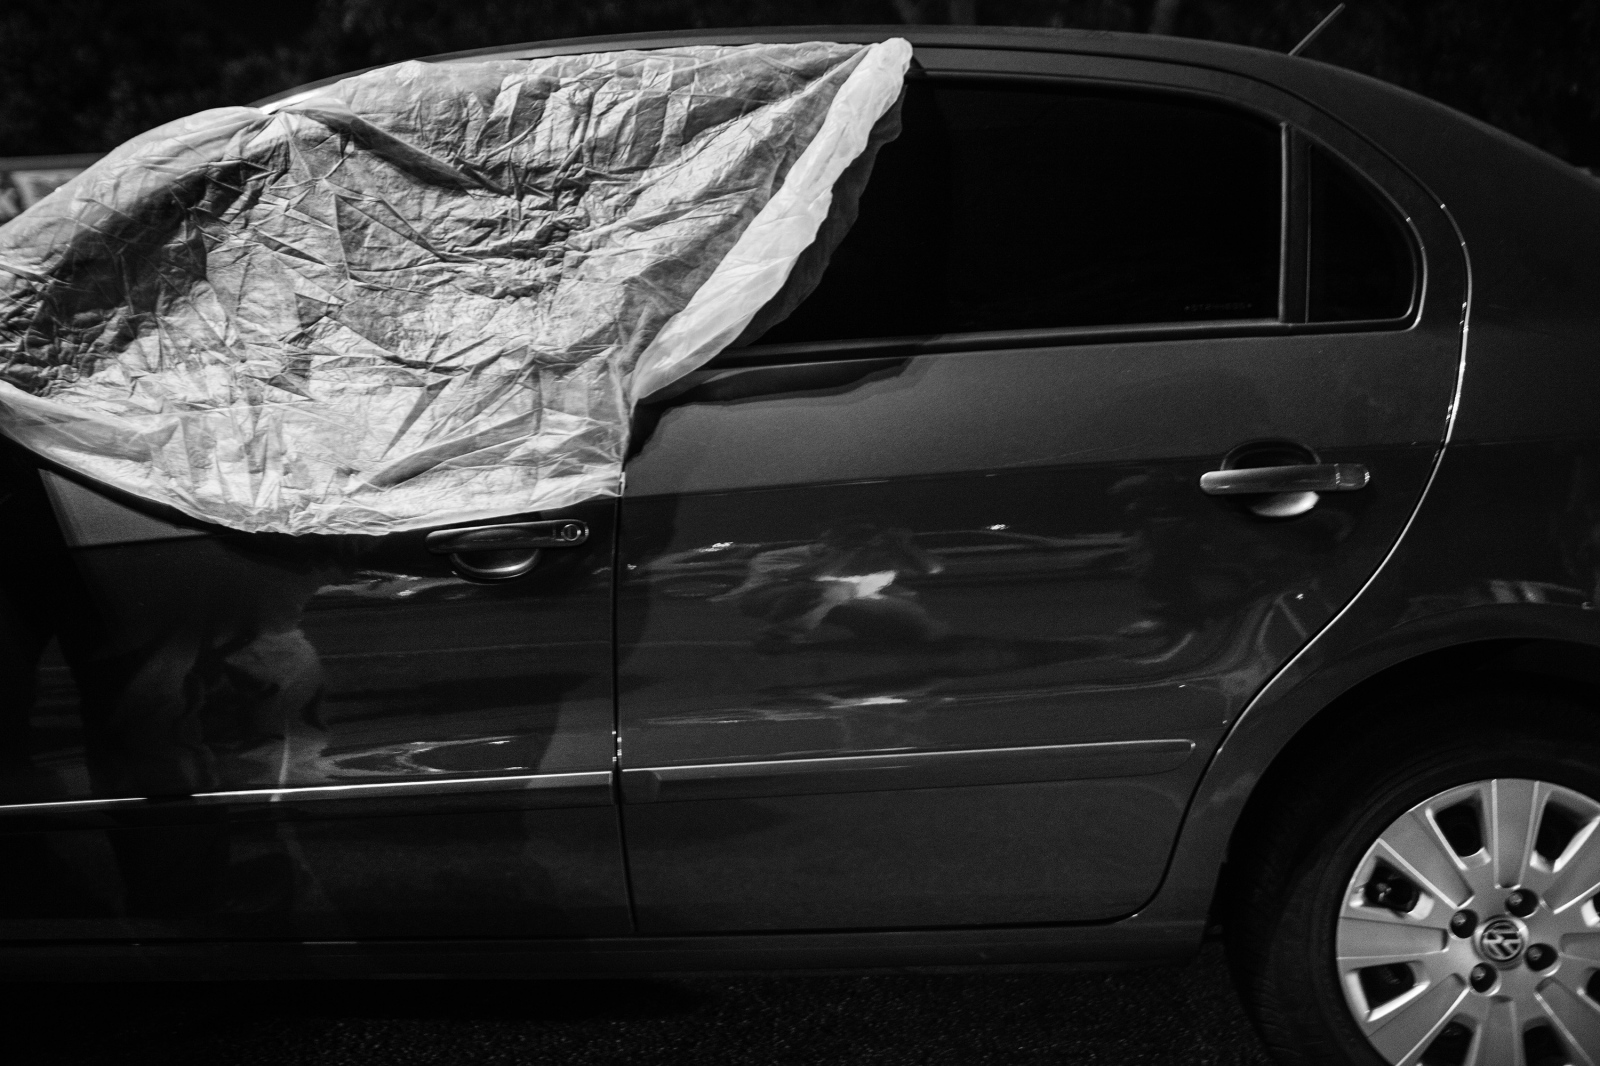 A car window covered by the homicide division of the civilian police, where a man was killed with multiple gunshots to the head and chest during a car jacking attempt in Meyer. July 2011.